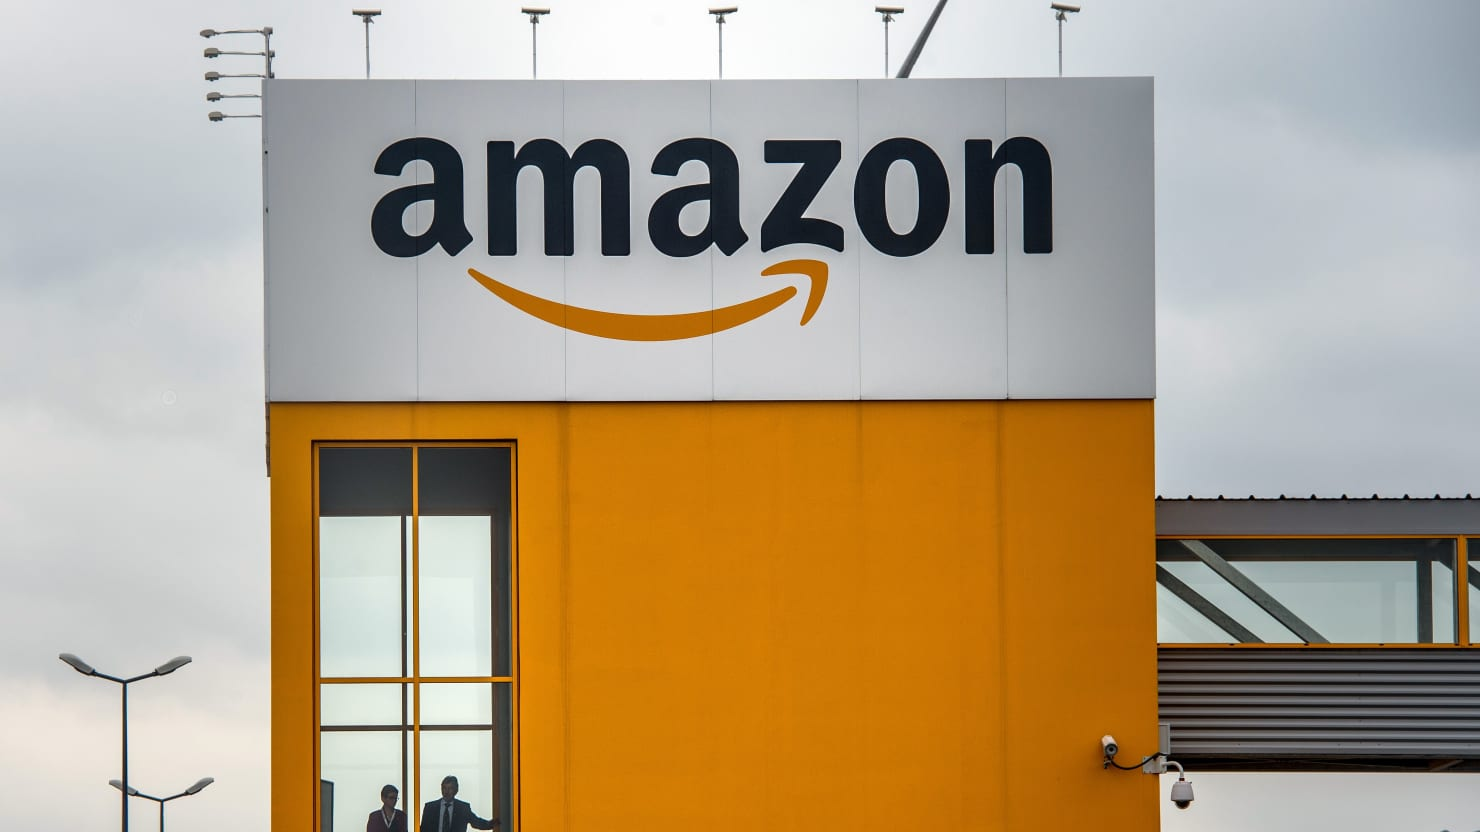 Amazon Hired Pinkerton Operatives to Spy on Warehouse Workers: Vice